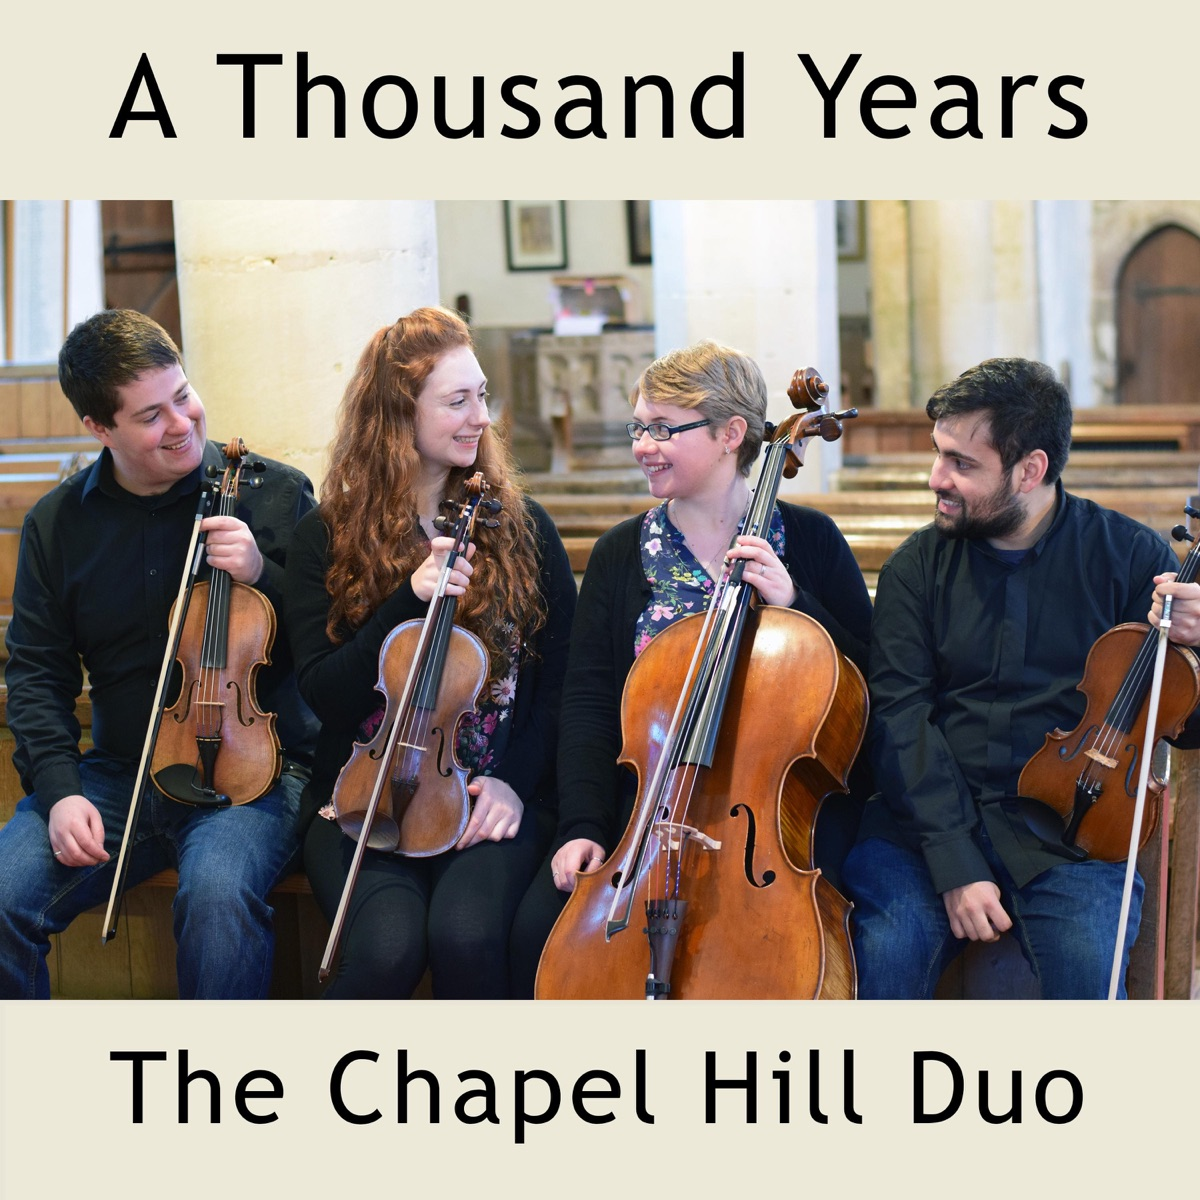 A Thousand Years Live String Quartet Wedding Ceremony Version - Single The Chapel Hill Duo CD cover